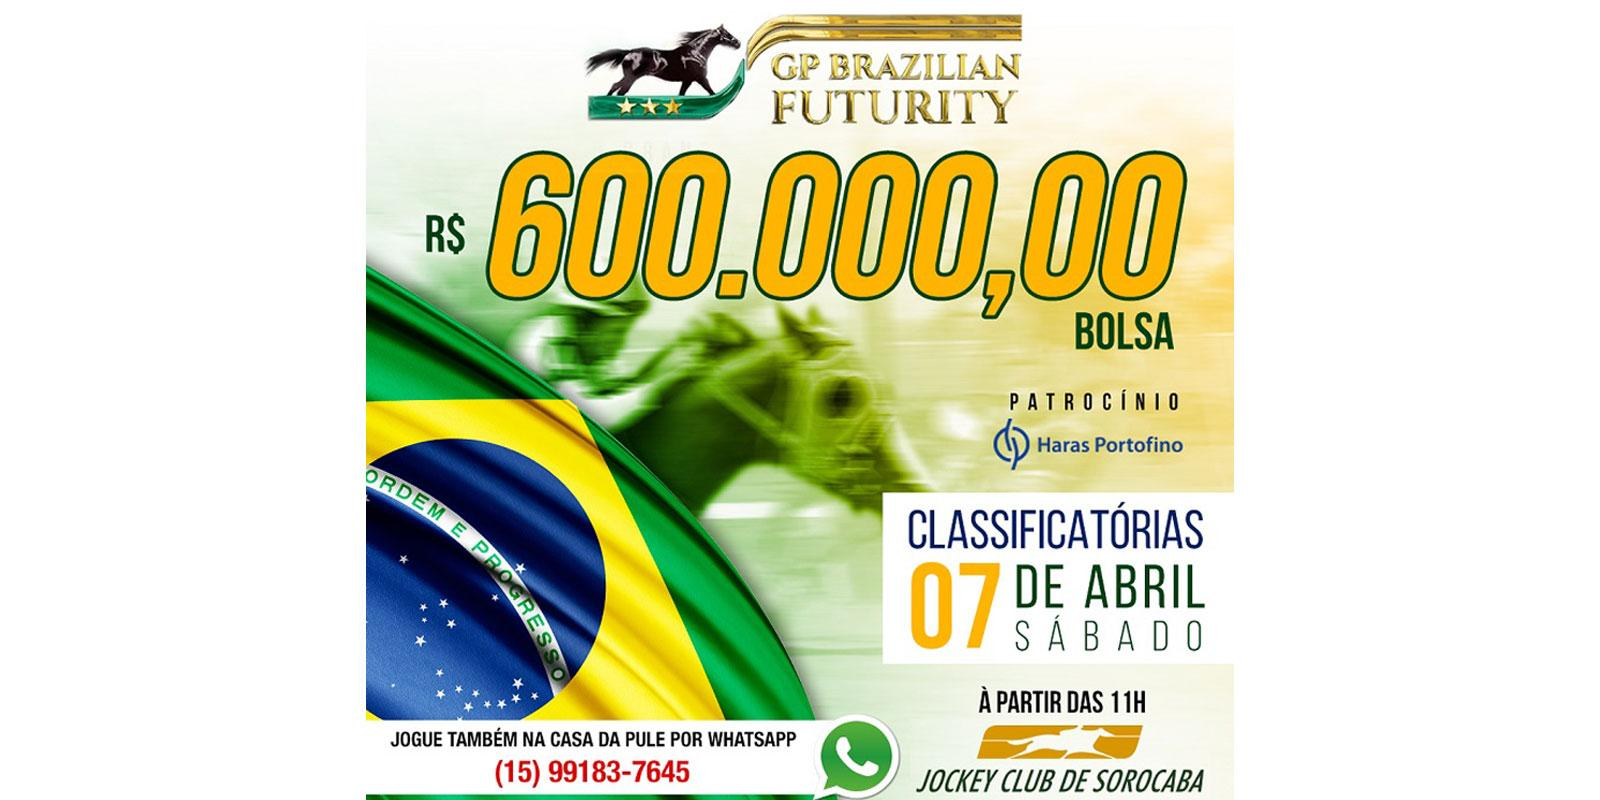 GP BRAZILIAN FUTURITY 2018